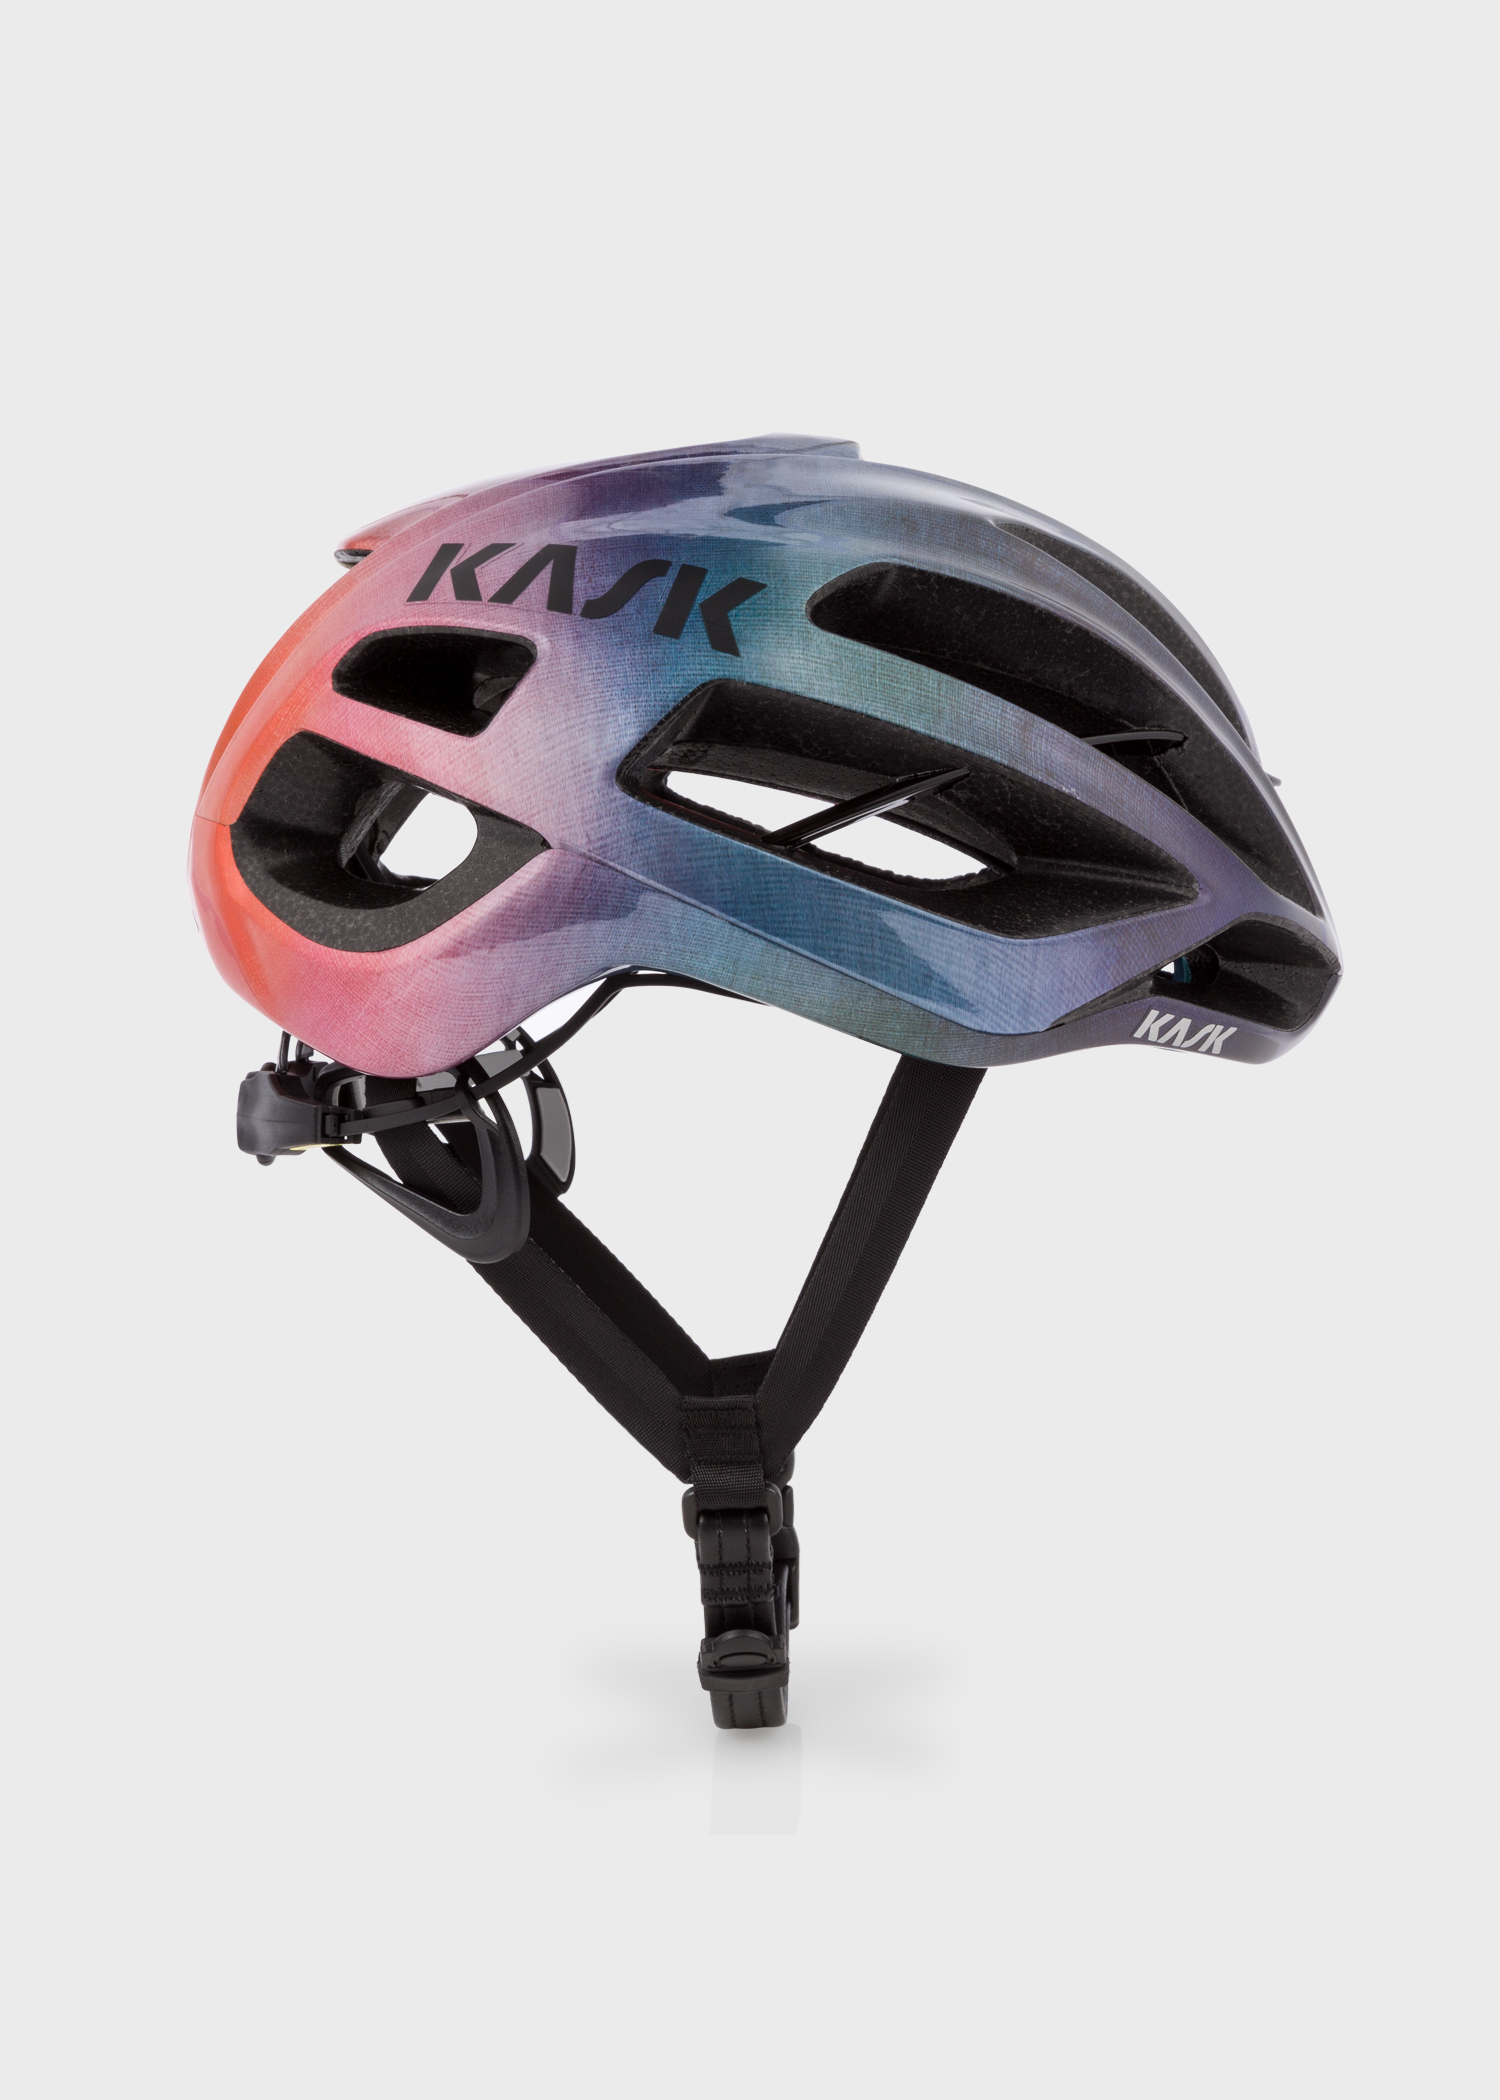 Paul Smith Kask Rainbow Gradient Protone Cycling Helmet Paul Smith